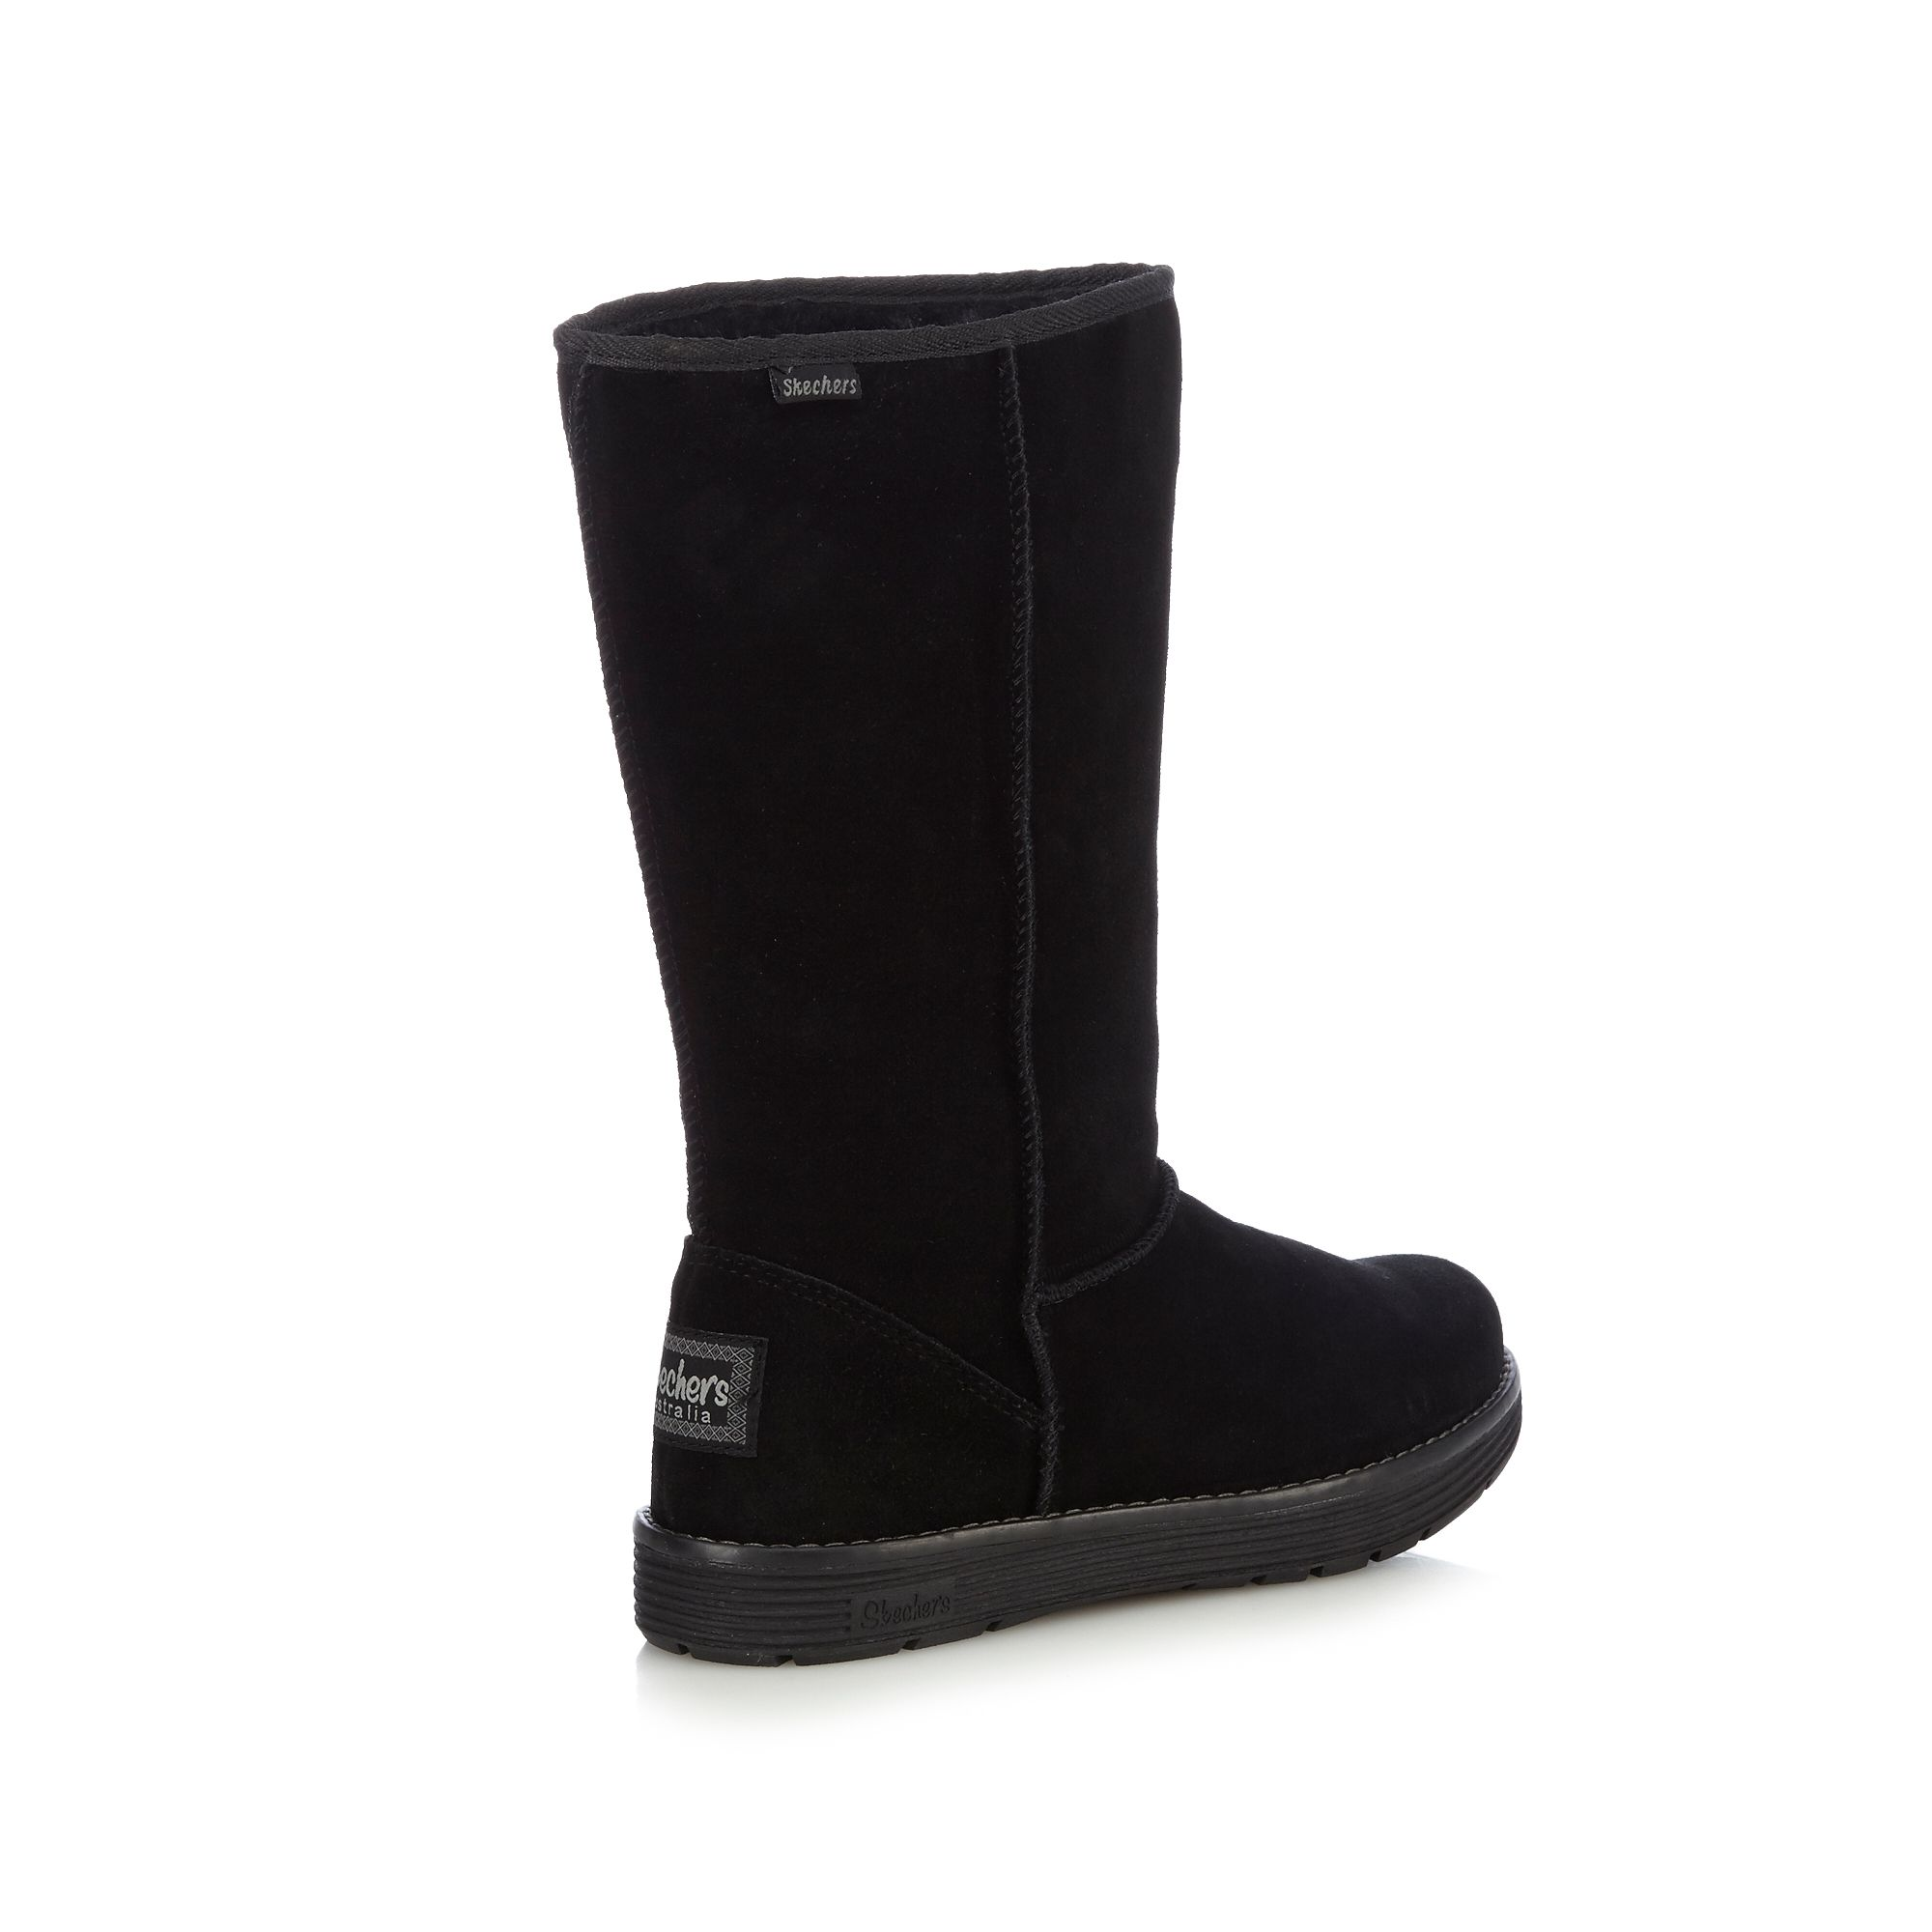 skechers womens black adorbs suede buckle boots from